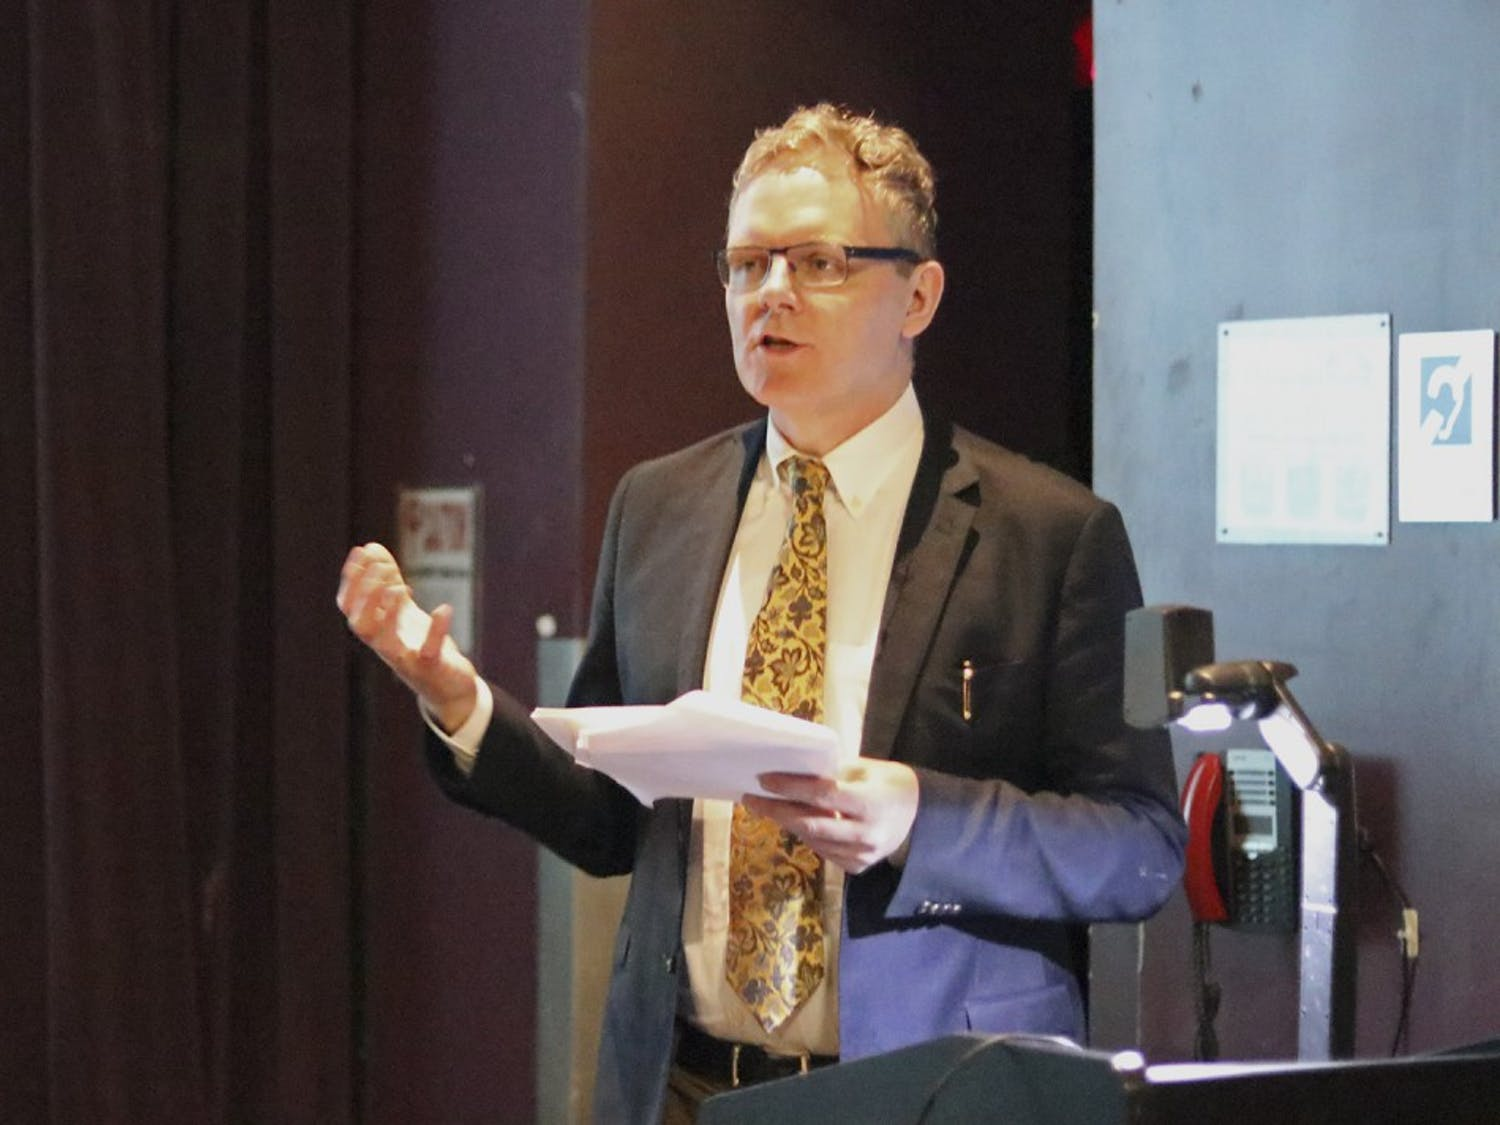 Stephen J. Campbell, a professor from John Hopkins, gave a lecture on 15th century Italian art at the Hanes Art Center on Wednesday night.